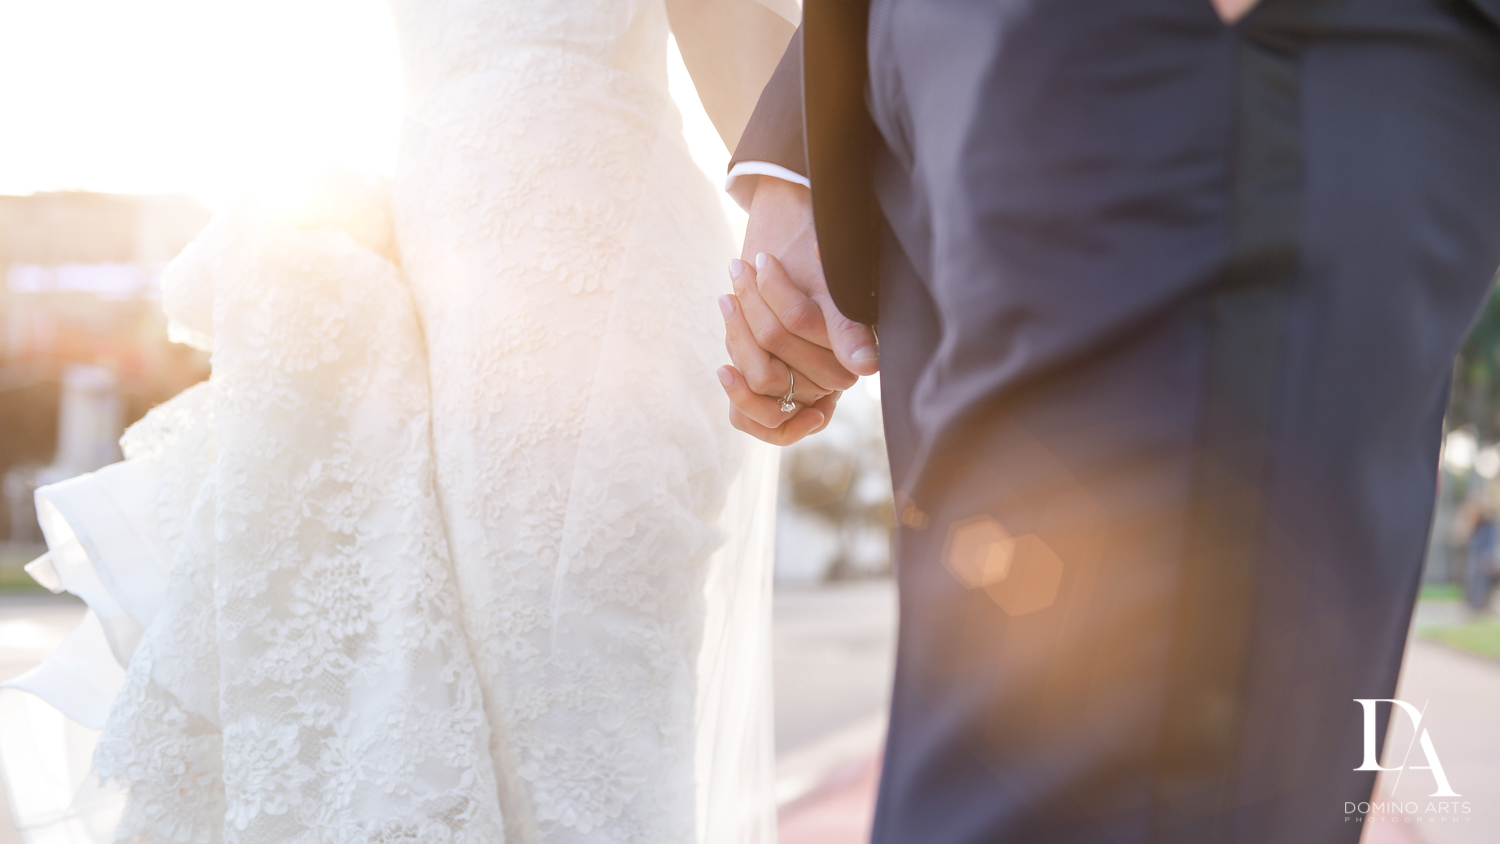 Romantic holding hands at Classic Miami Beach Wedding at Temple Emanu-El and Emanuel Luxury Venue by Domino Arts Photography